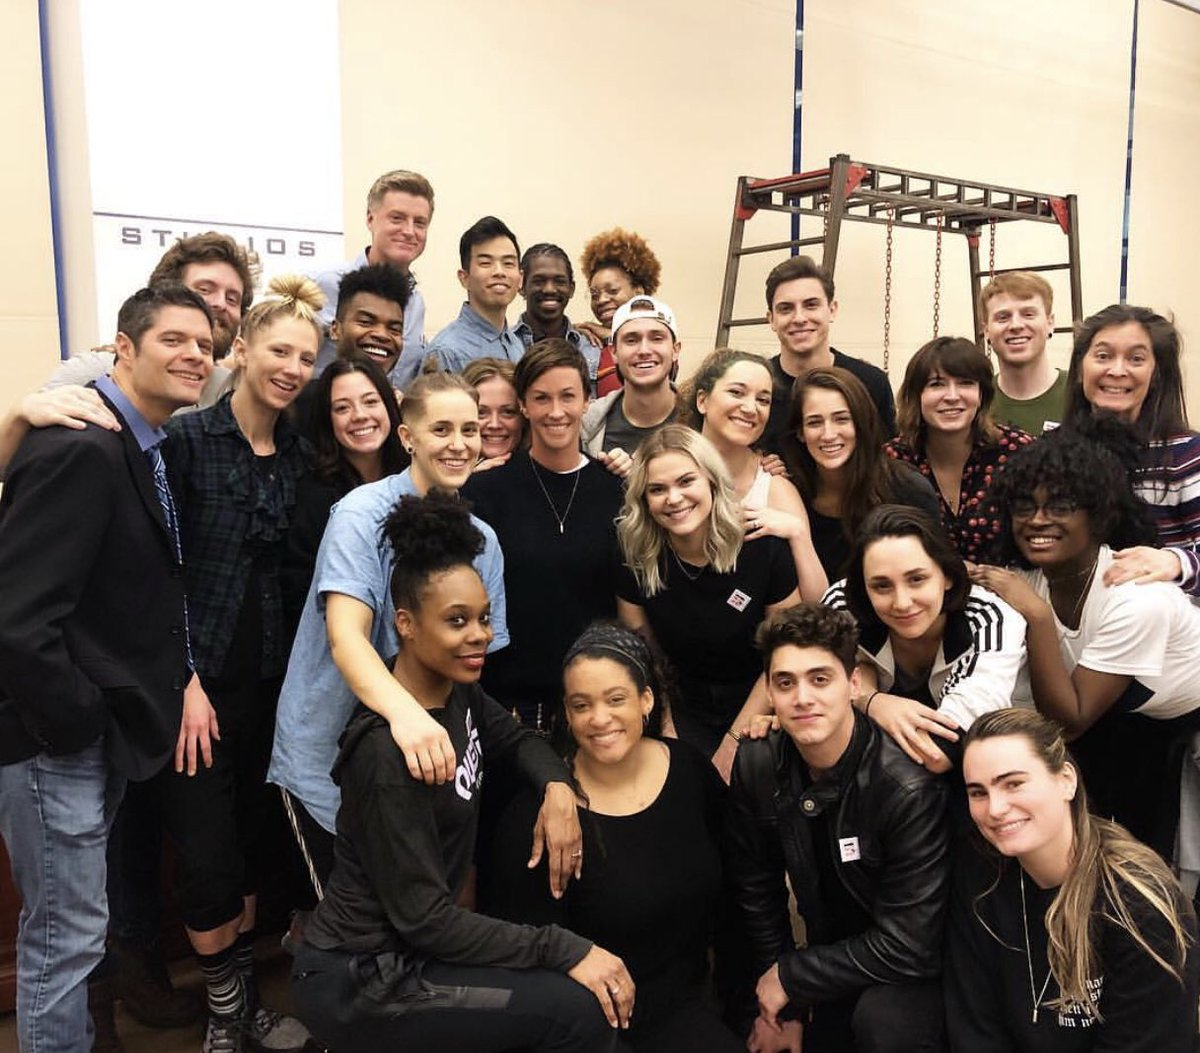 These incredible humans. ????????????????✨♥️ #jaggedlittlepillmusical #???? #???? #???????? #helmetson #handonheart #✨ https://t.co/2F7uMgvRsx